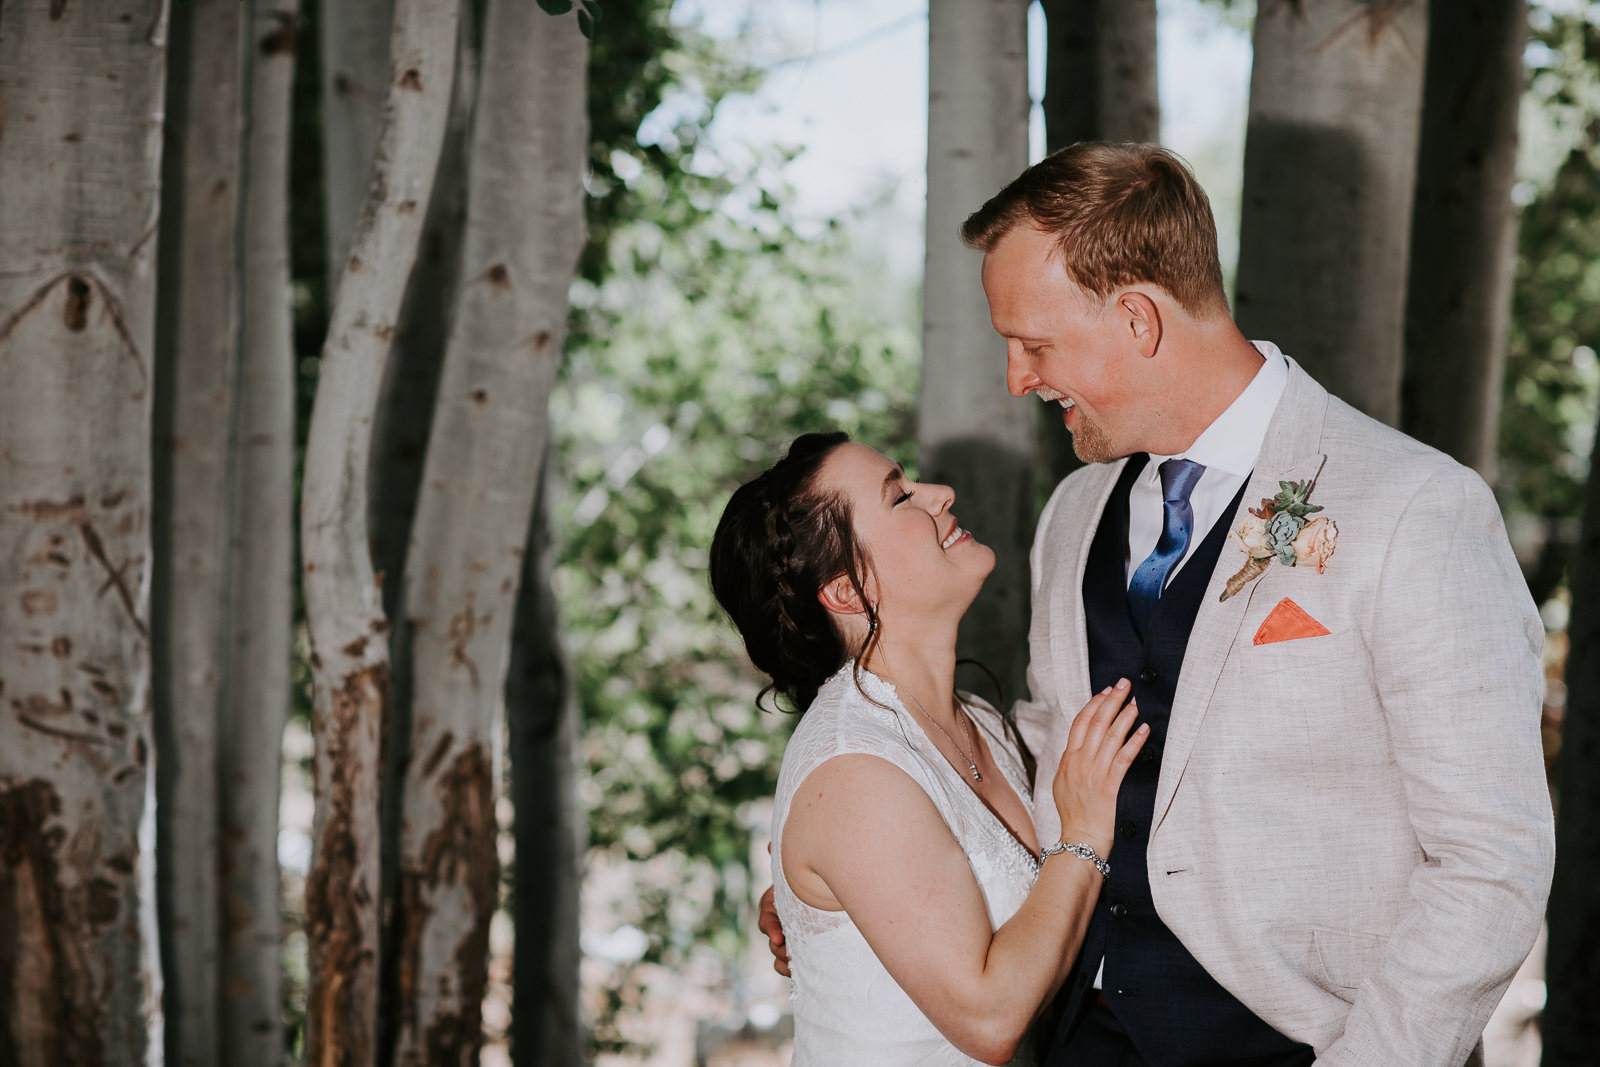 Smiling newlyweds standing close in honest moment during wedding photography session in Palisade, Colorado